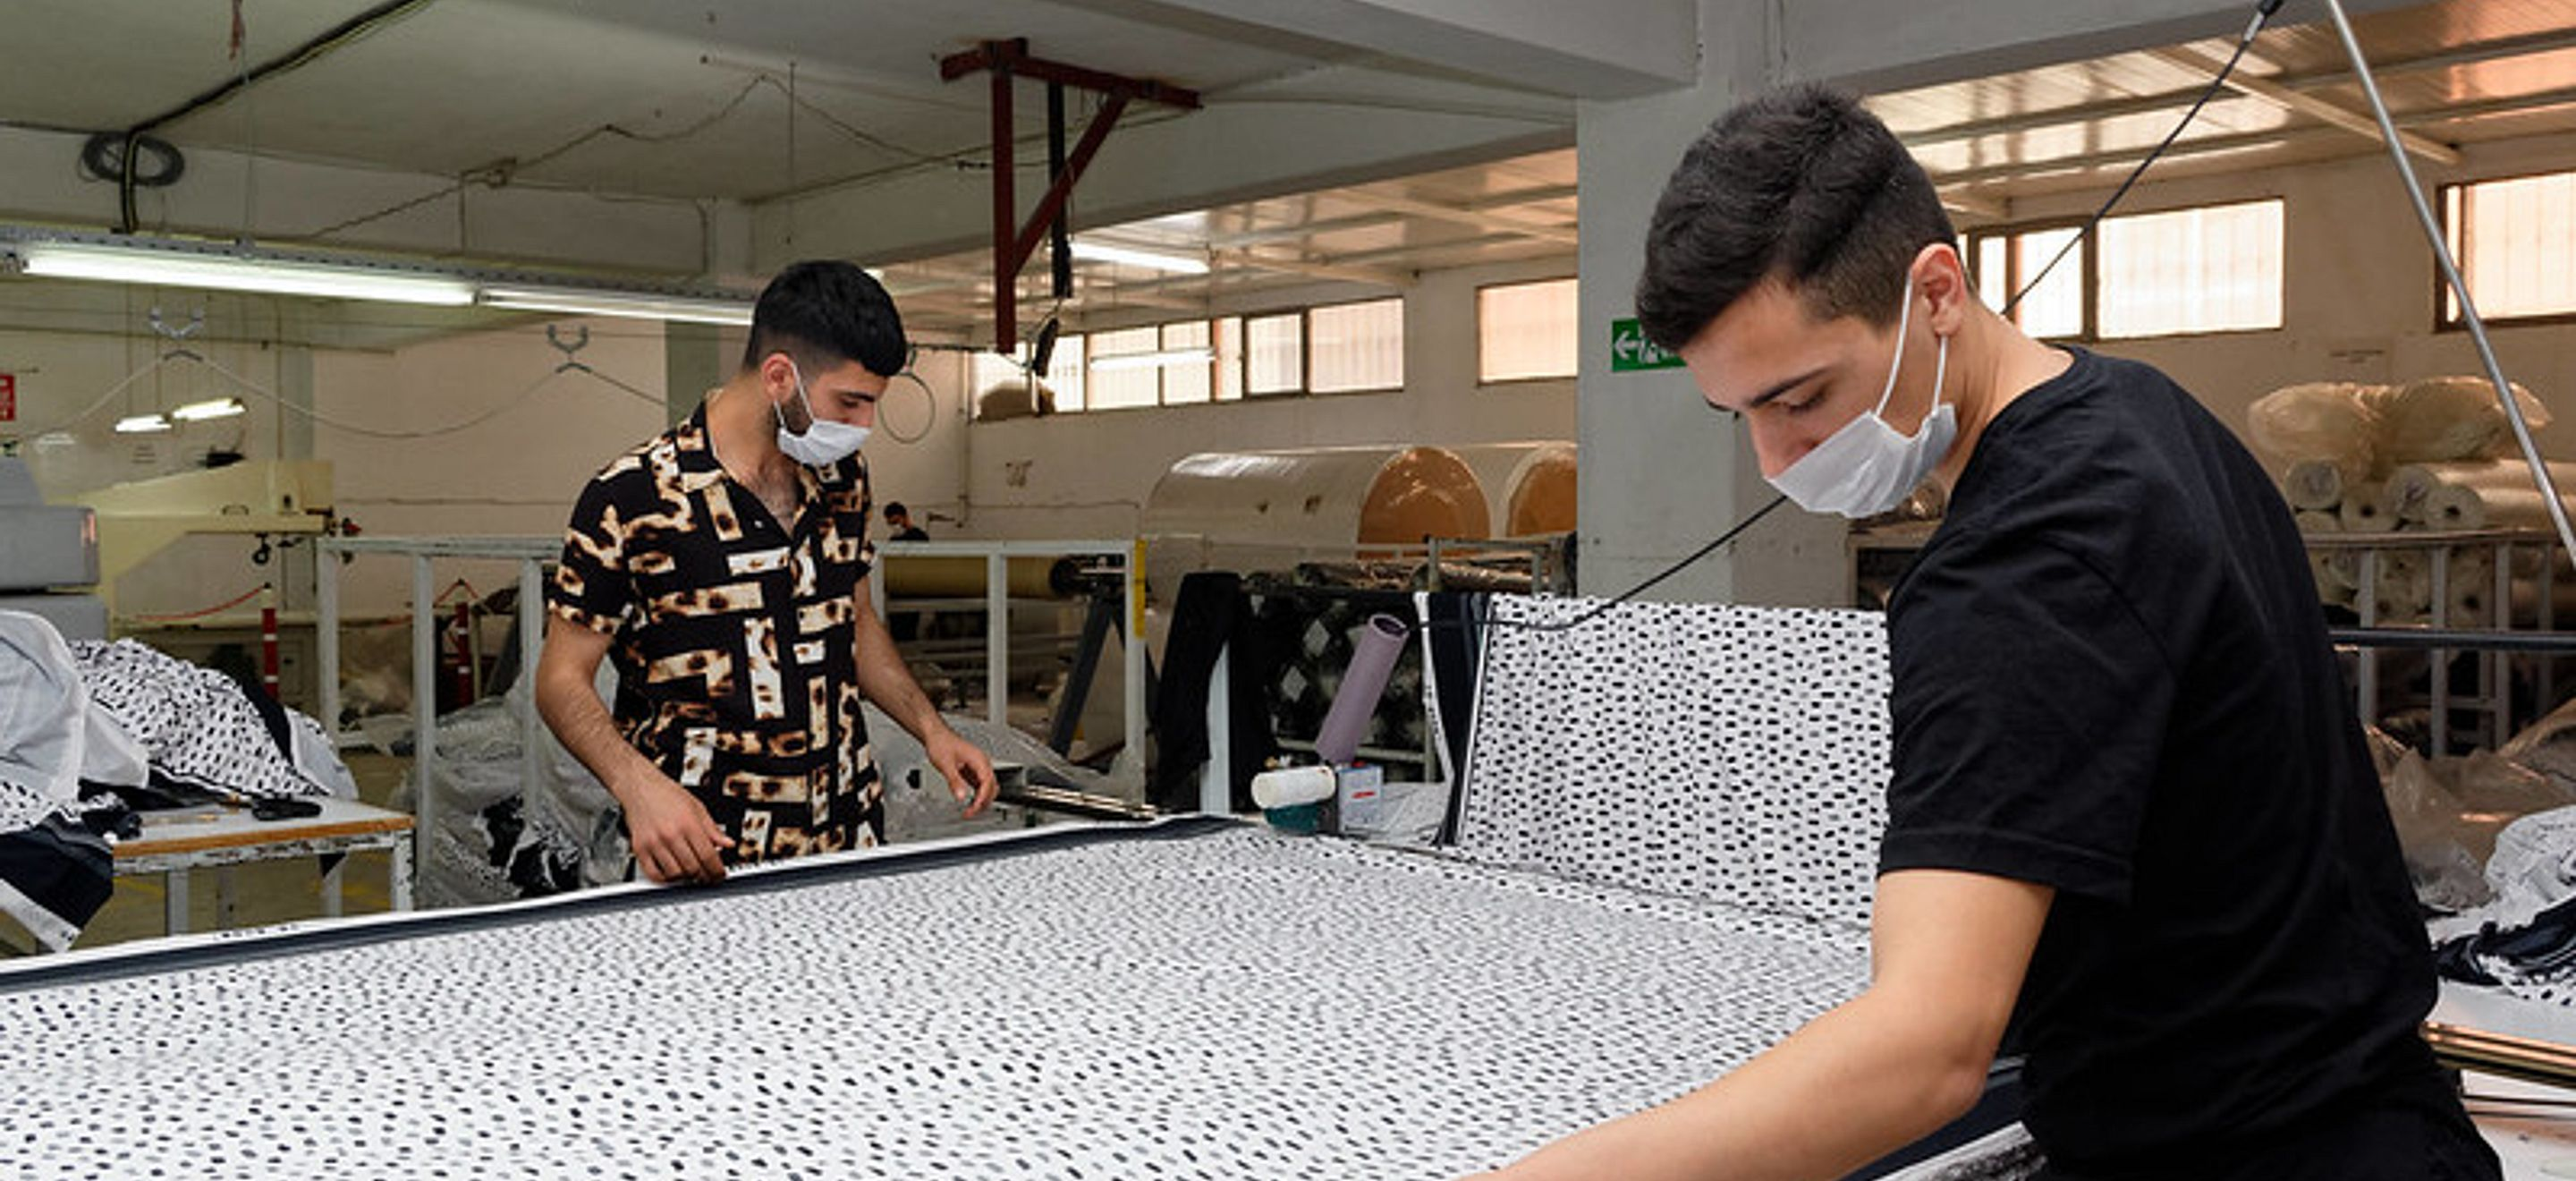 Two young men work in a garment business. They are wearing medical mask and are working with a large piece of printed fabric.